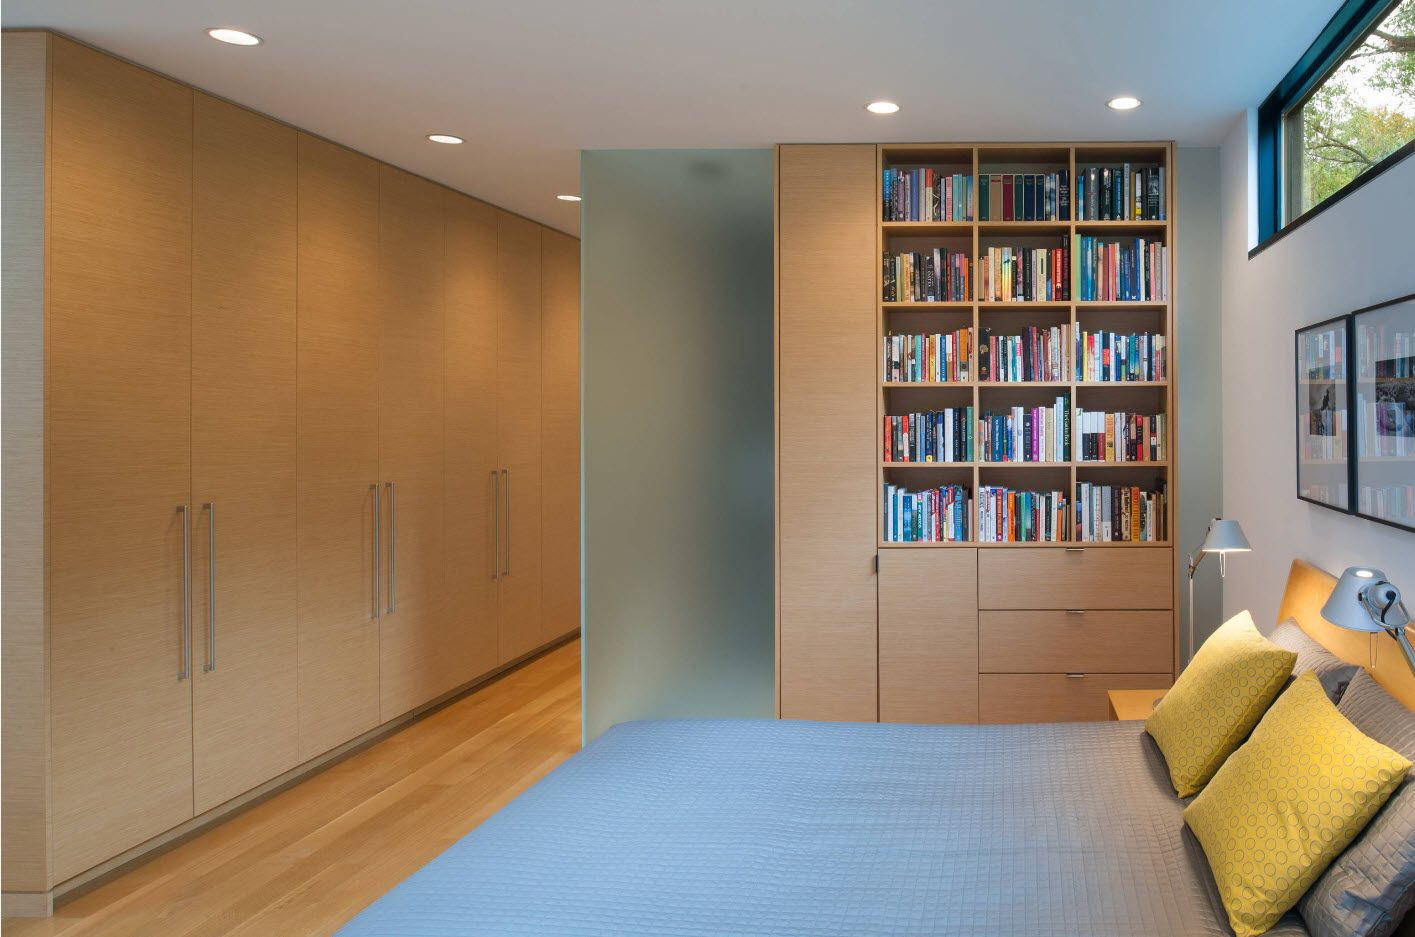 Library-bedroom zoning ideas